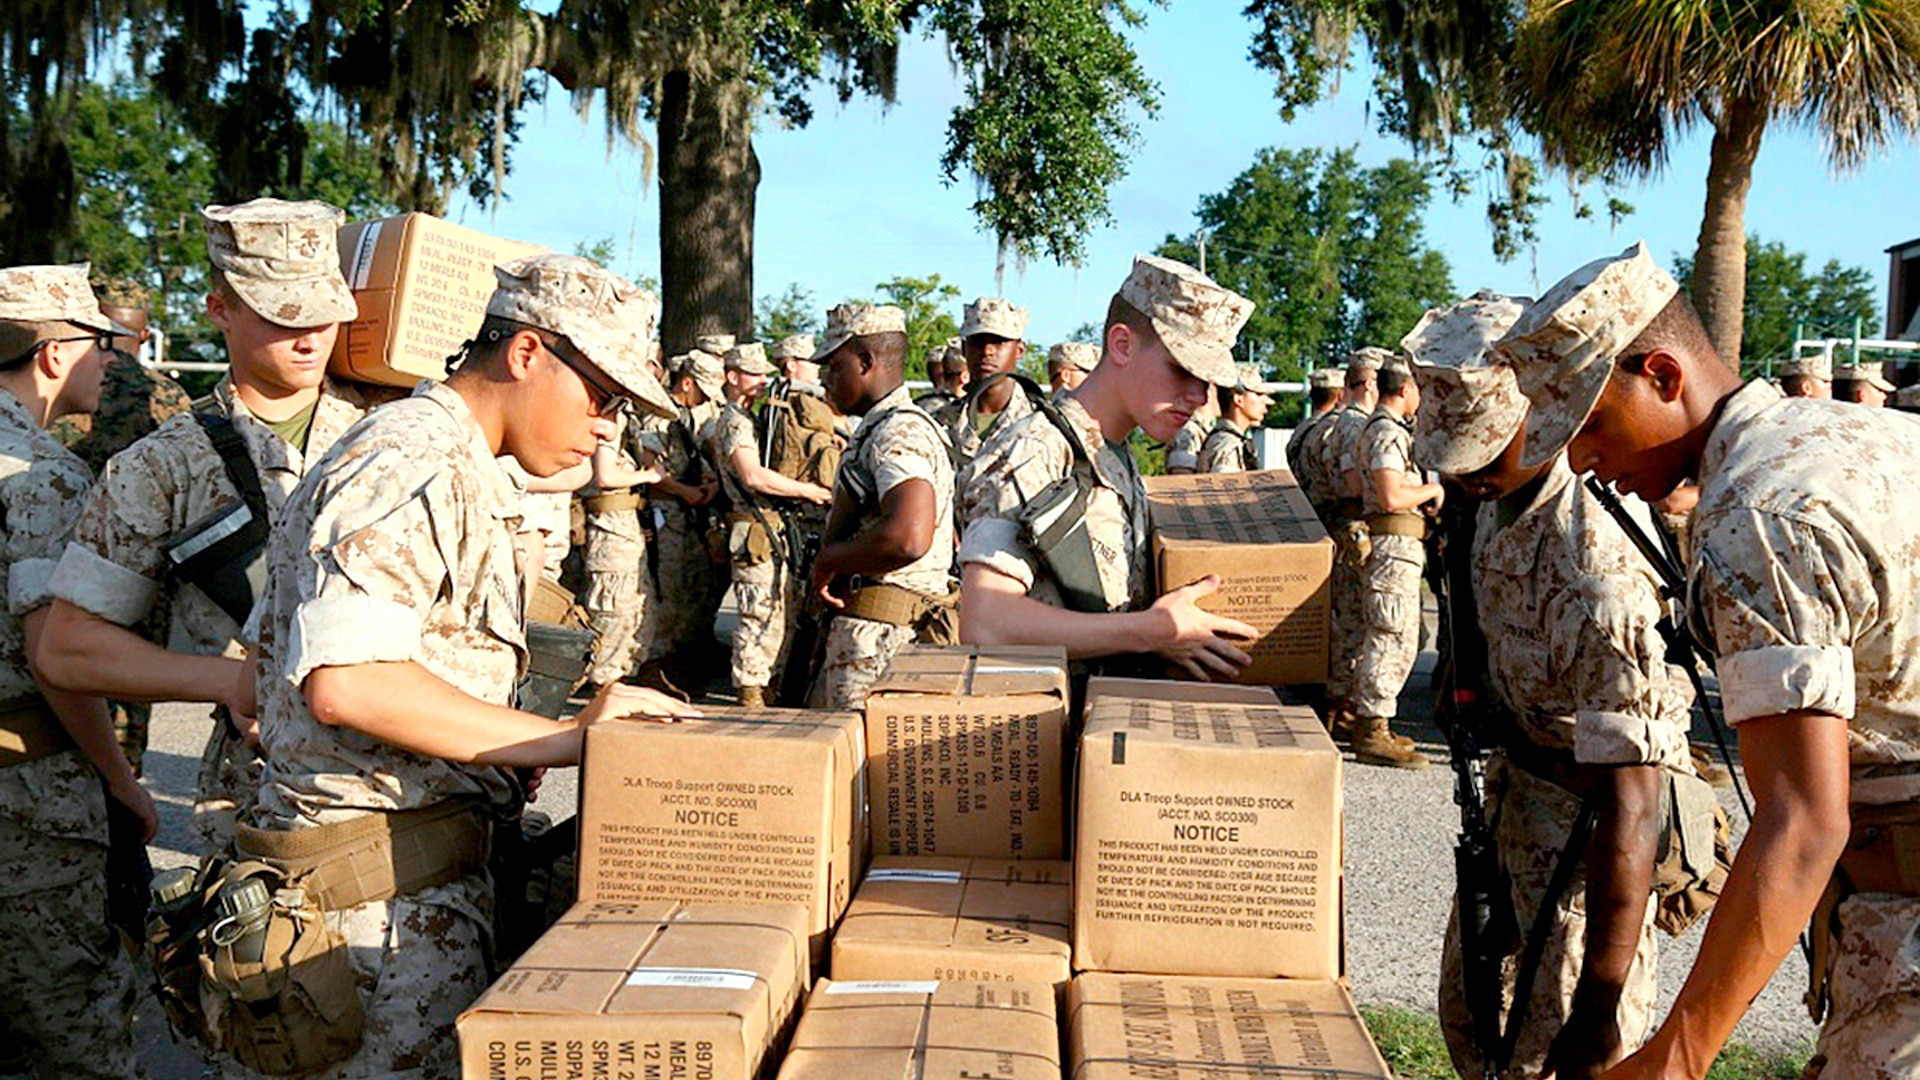 Recruits at Marine Corps Recruit Depot Parris Island, S.C., prepare to evacuate to Marine Corps Logistic Base Albany on Sept. 11, 2018, following an evacuation order ahead of Hurricane Florence. (Lance Cpl. Yamil Casarreal/Marine Corps)